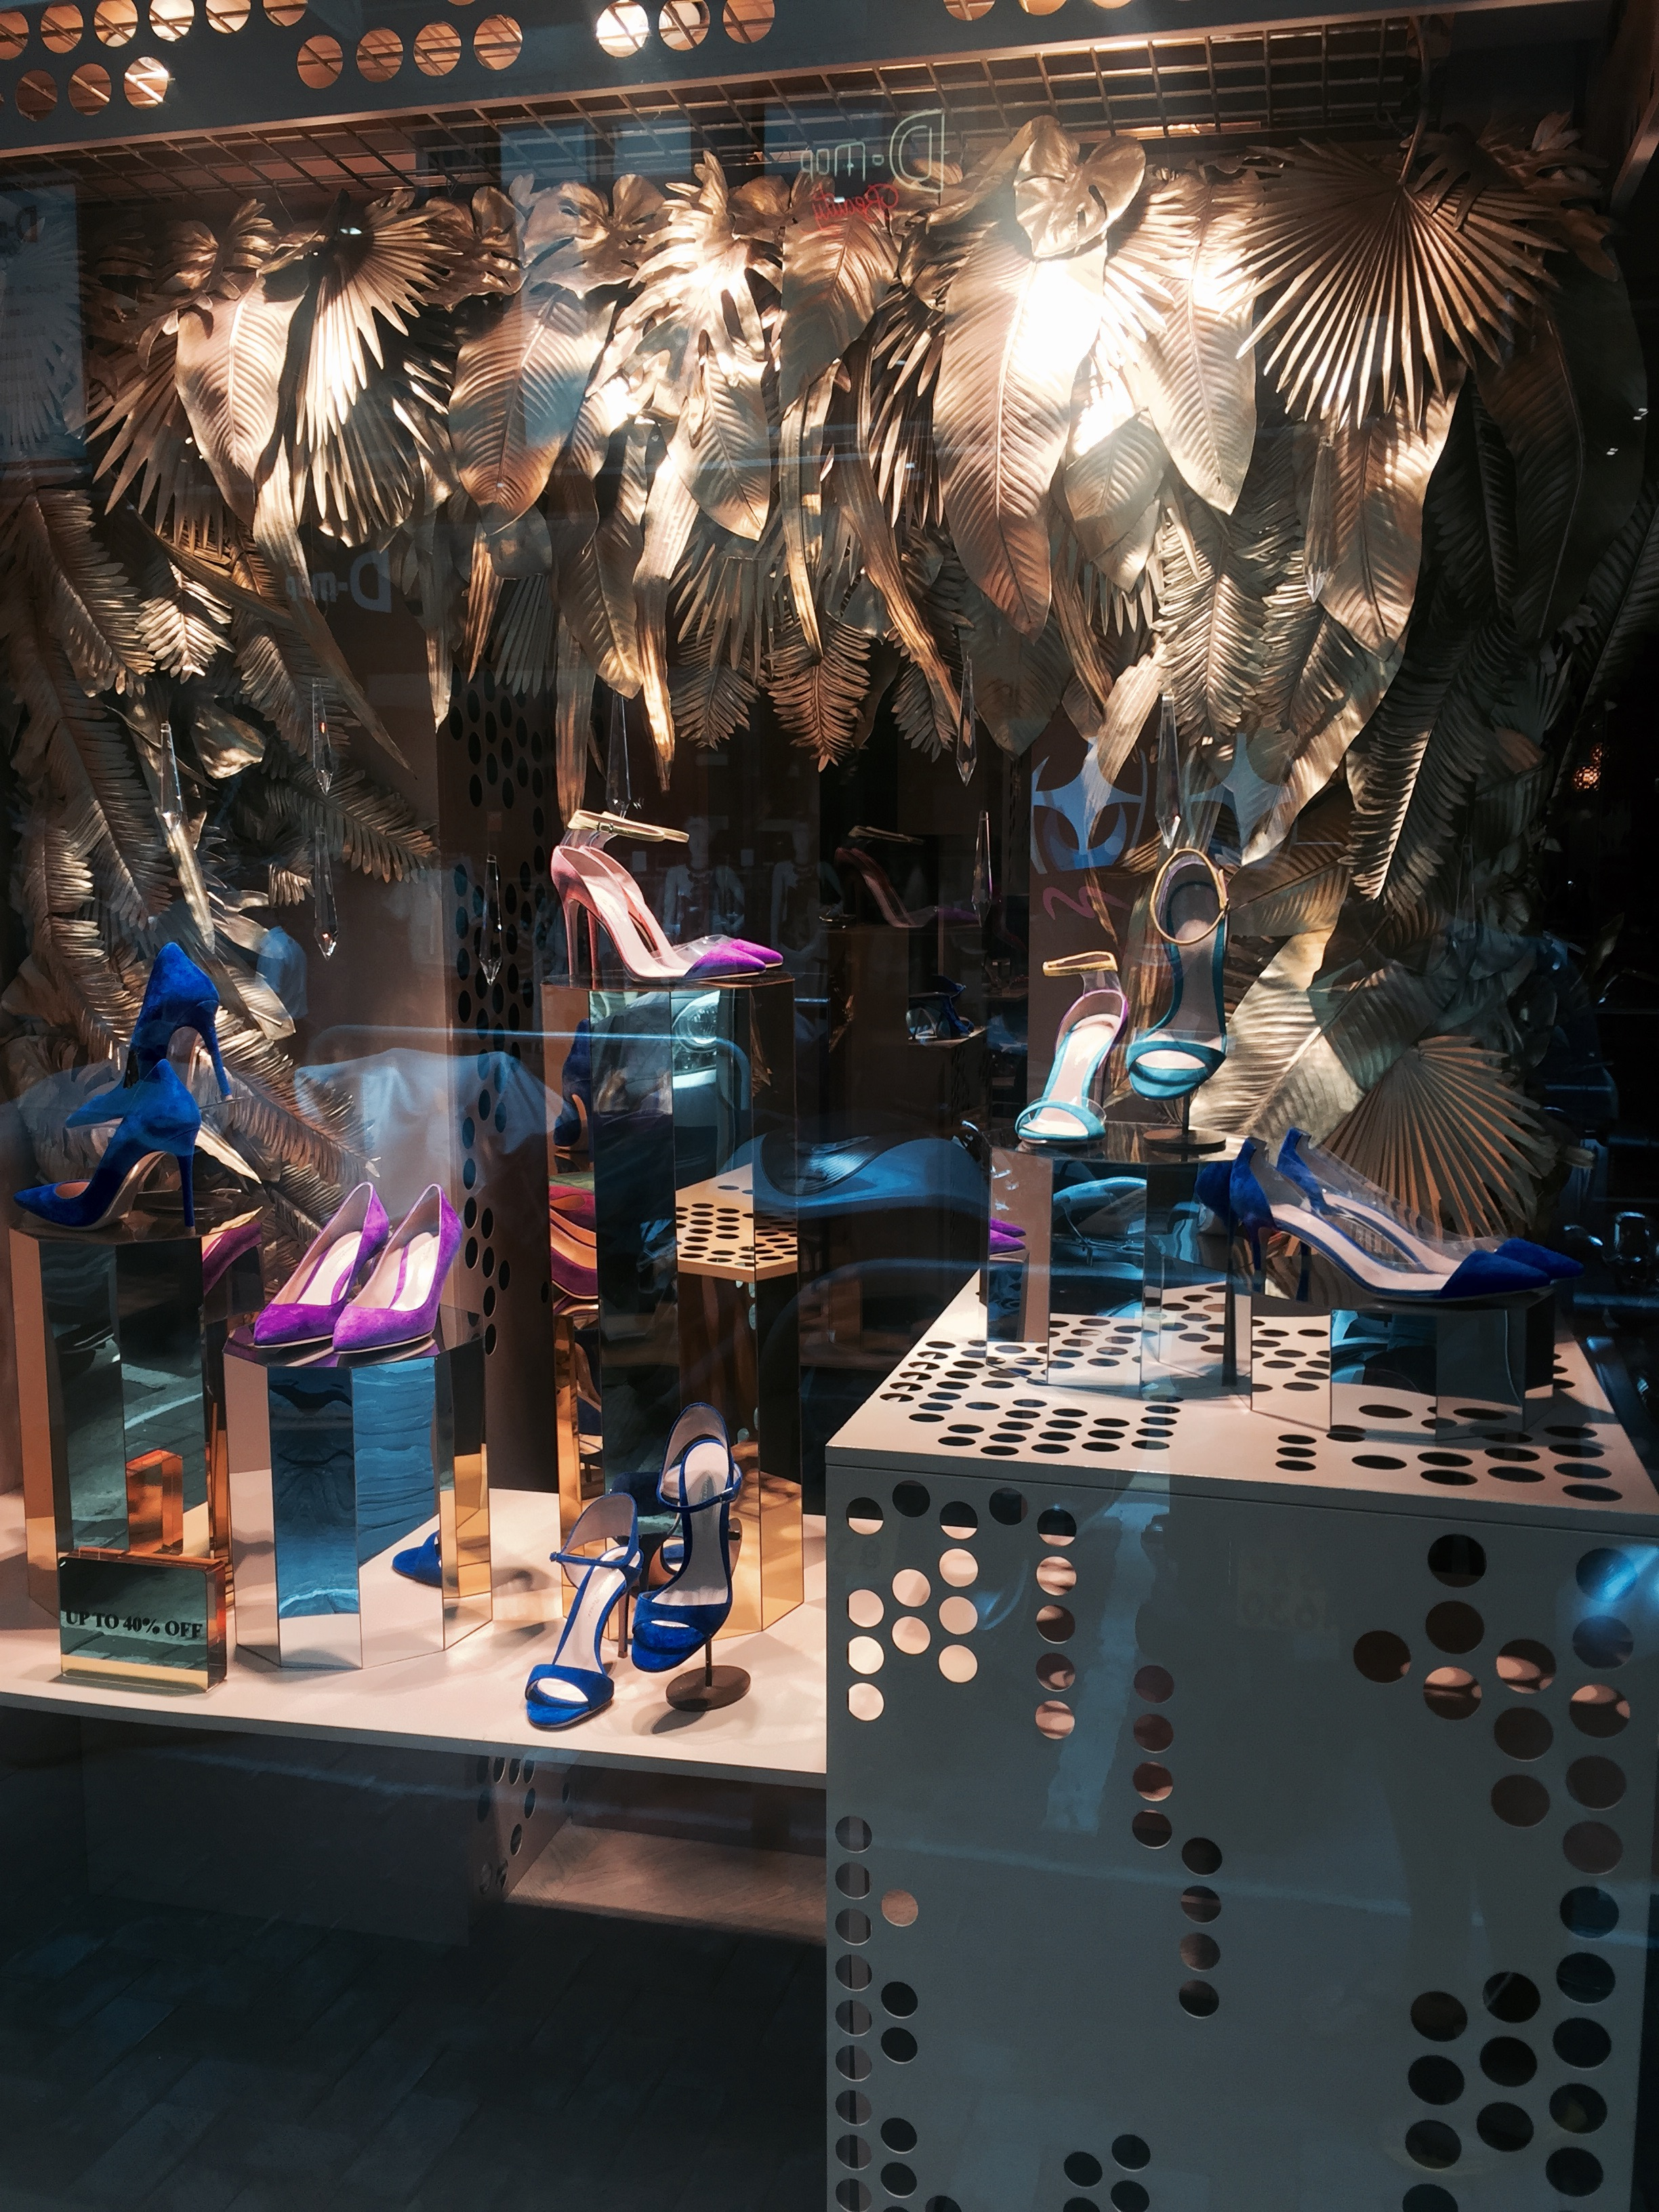 Gianvito-Rossi-Shoes-Hong-Kong-Front-Window-2015.jpg